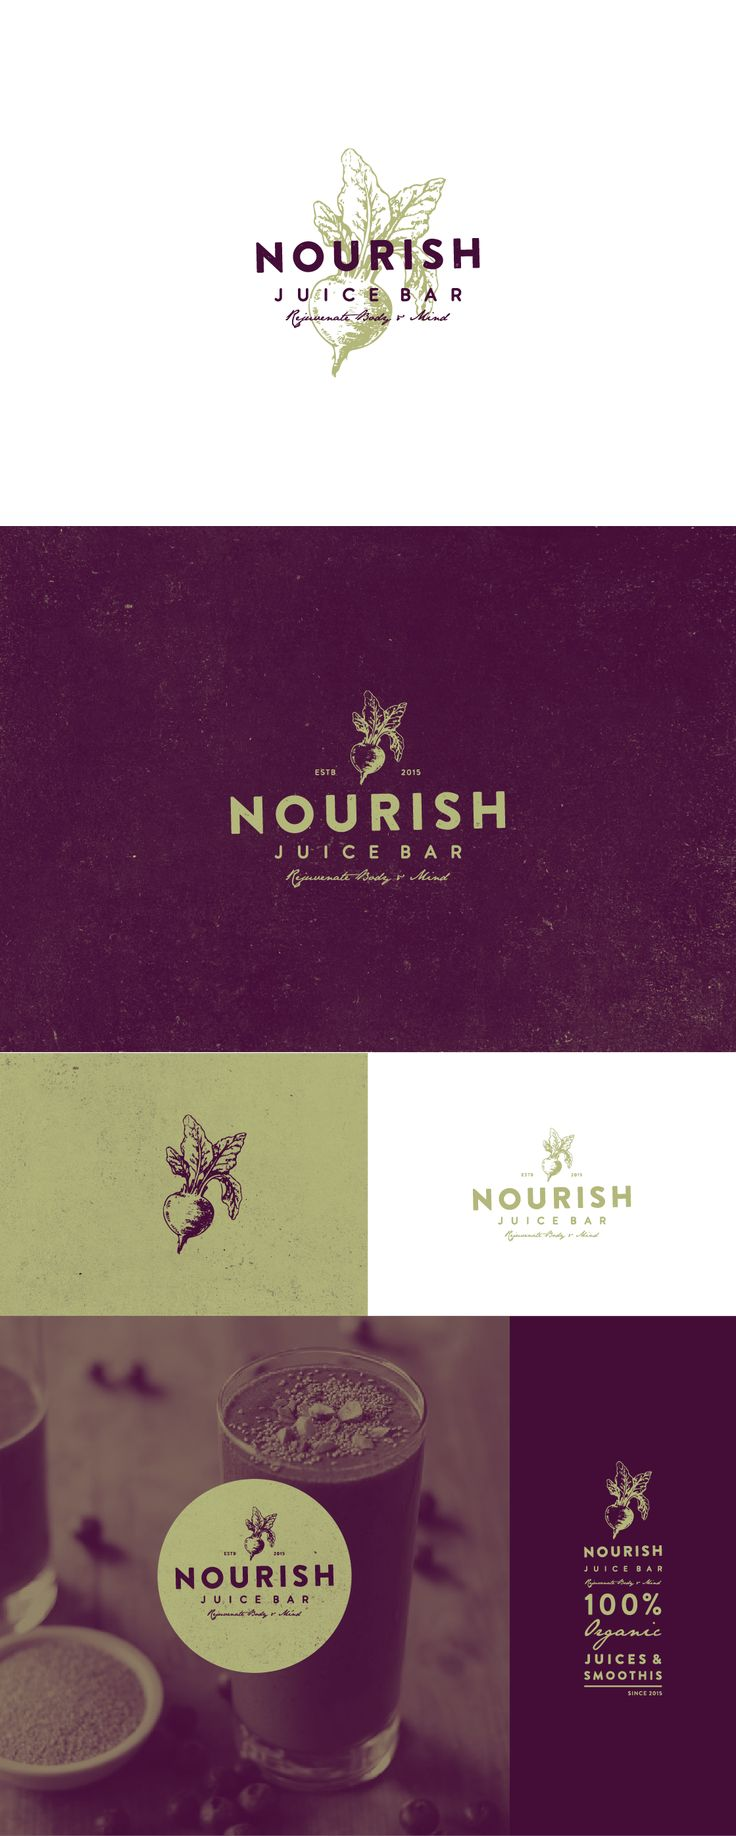 logo design for NOURISH juice bar                                                                                                                                                                                 More